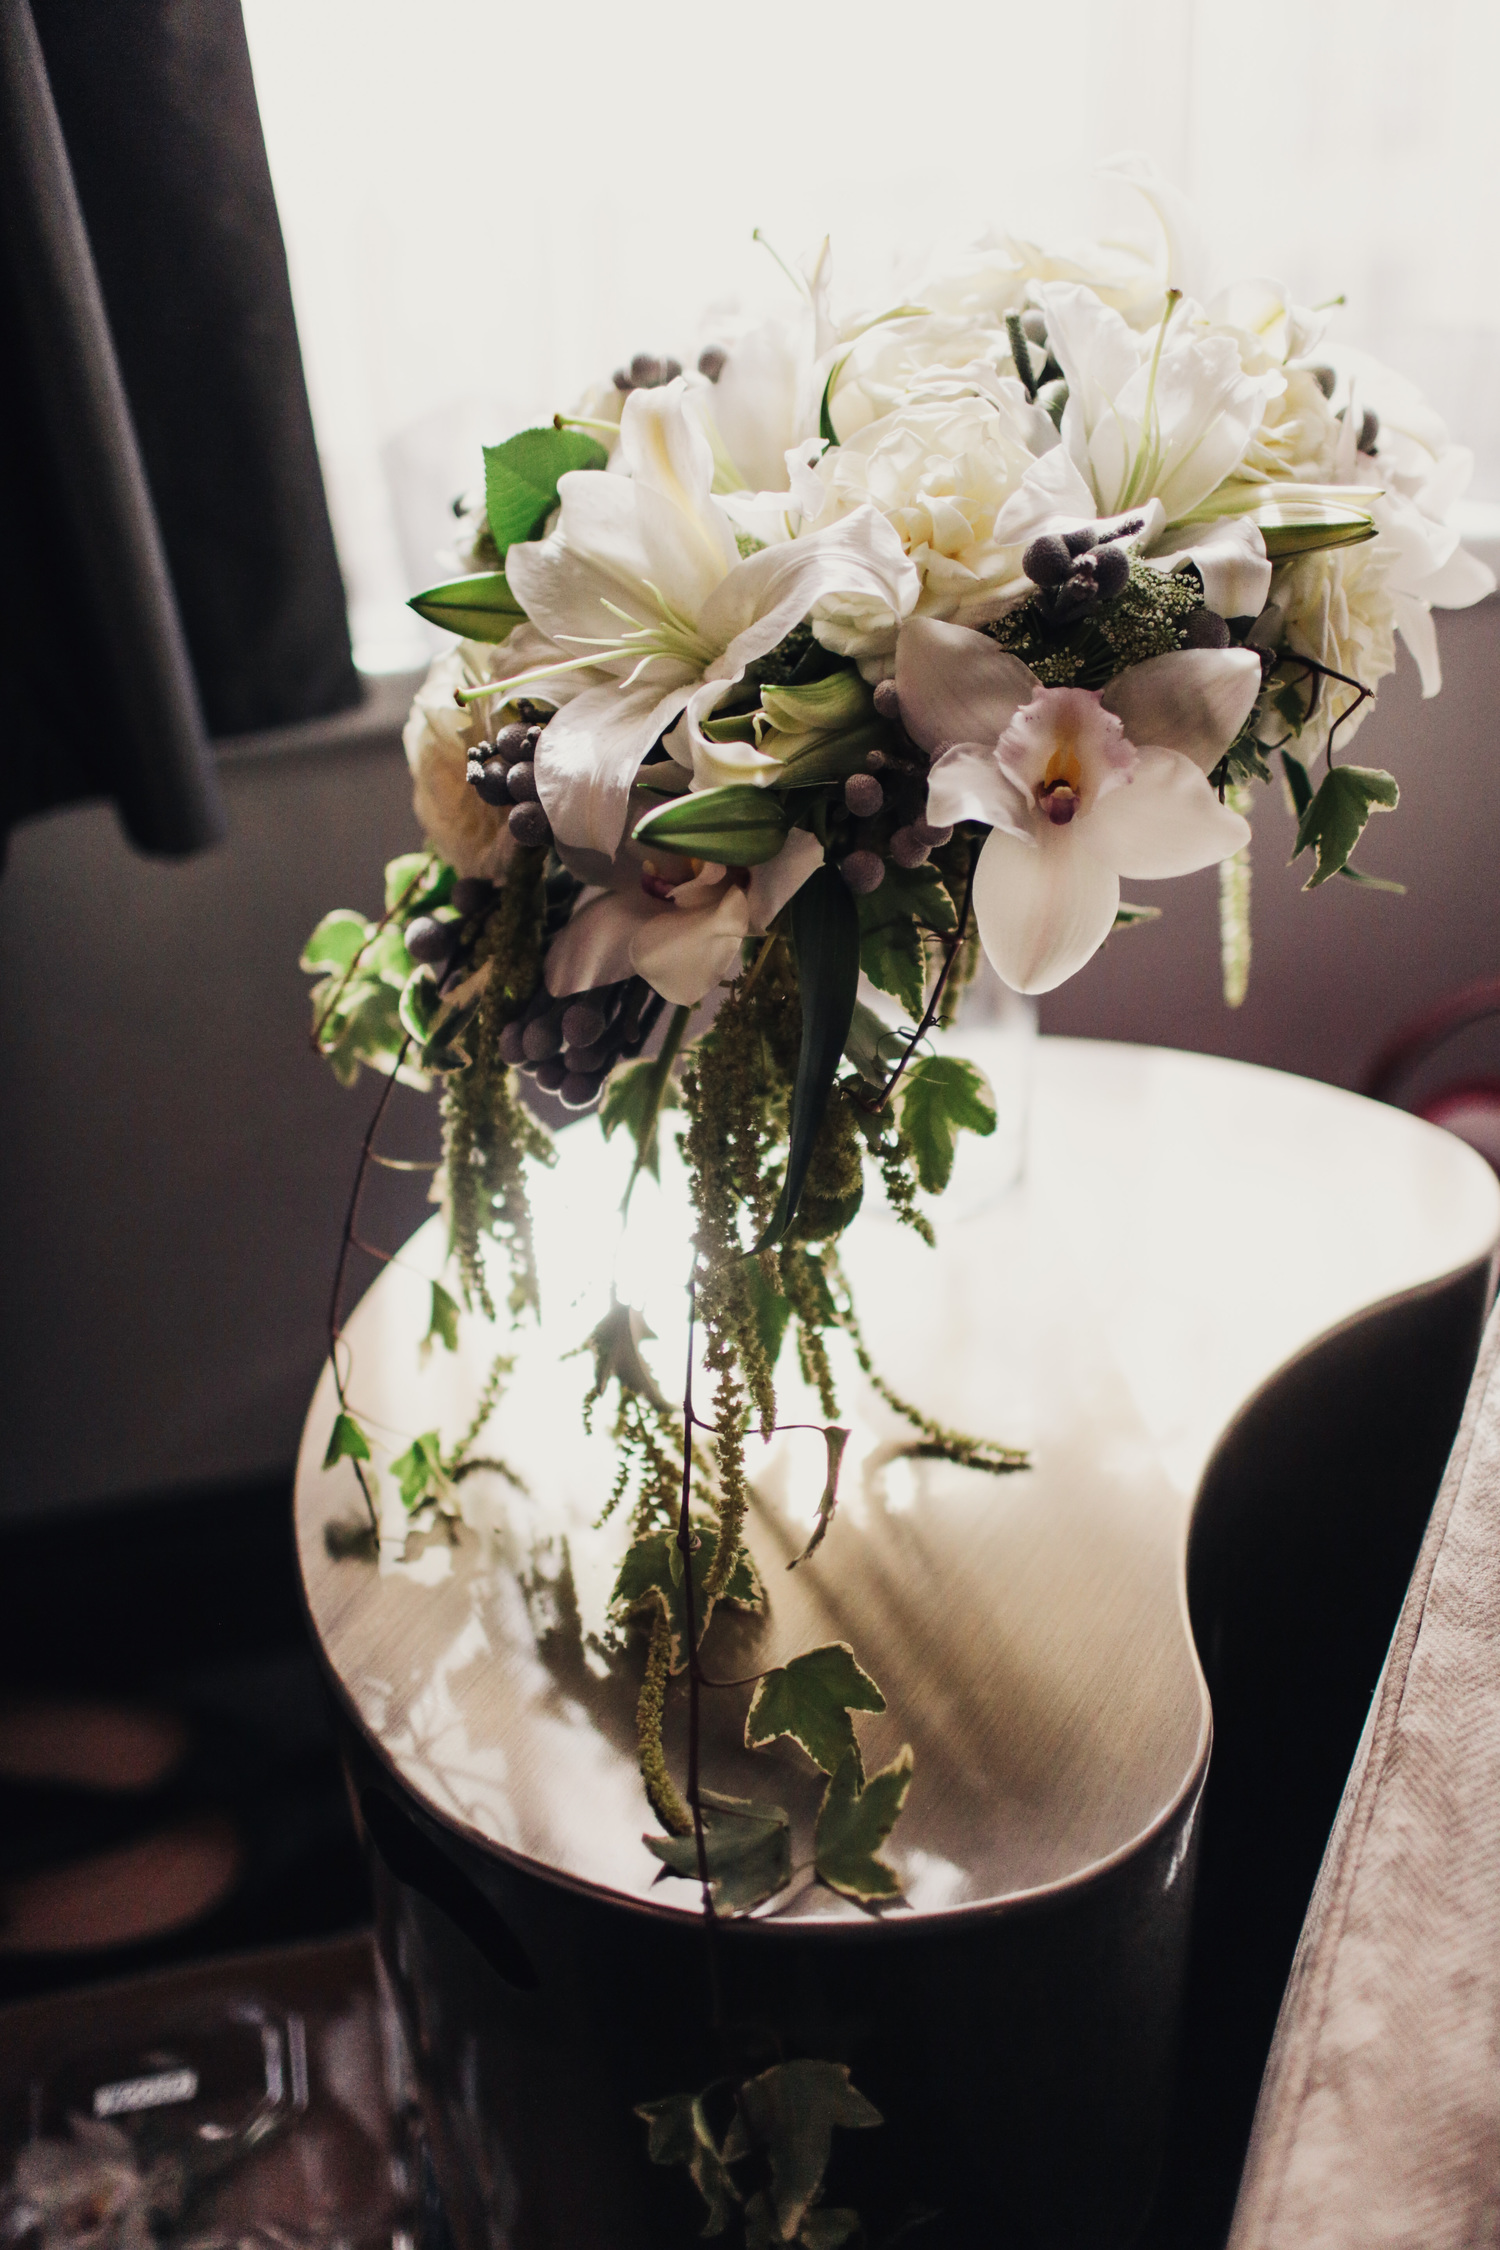 About Artistic Blooms